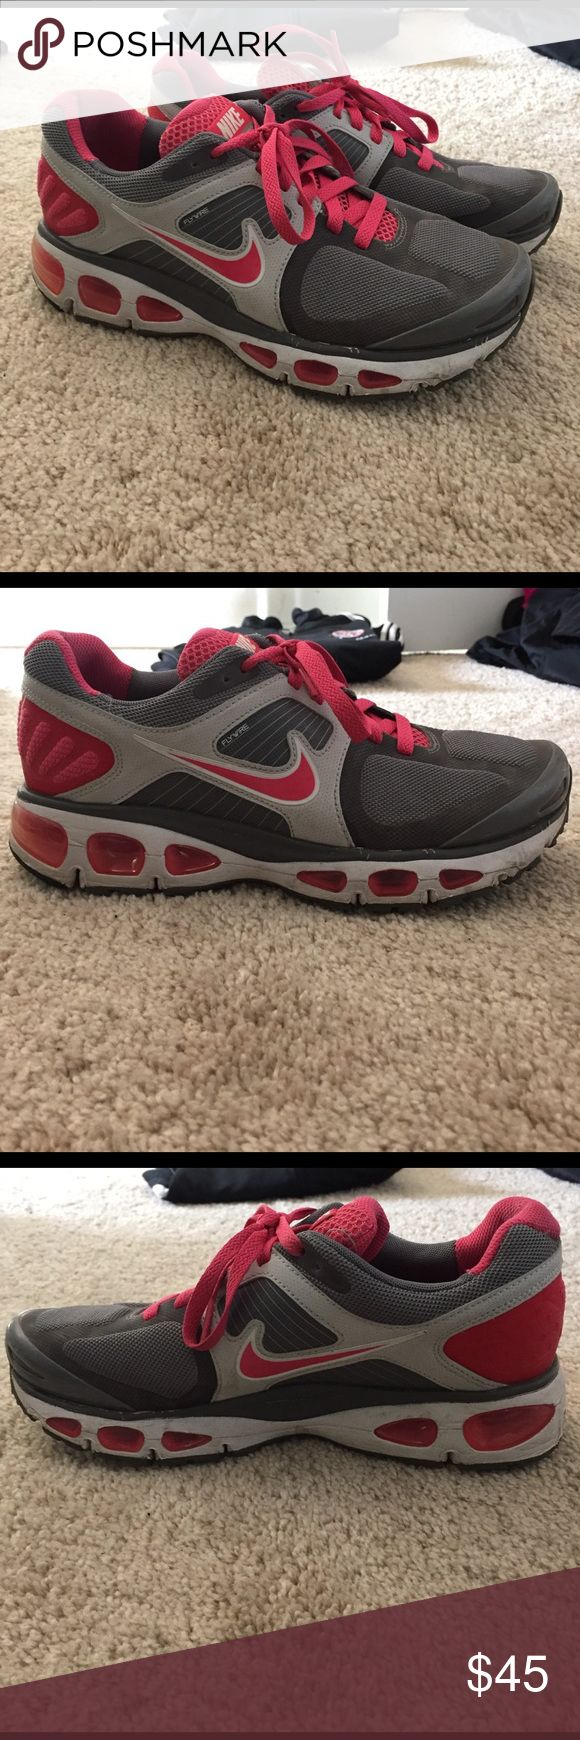 Nike Air Tailwind Shoes Flywire Technology Used but in very good condition! Nike Air Pink, light grey, and dark grey Nike Shoes Athletic Shoes